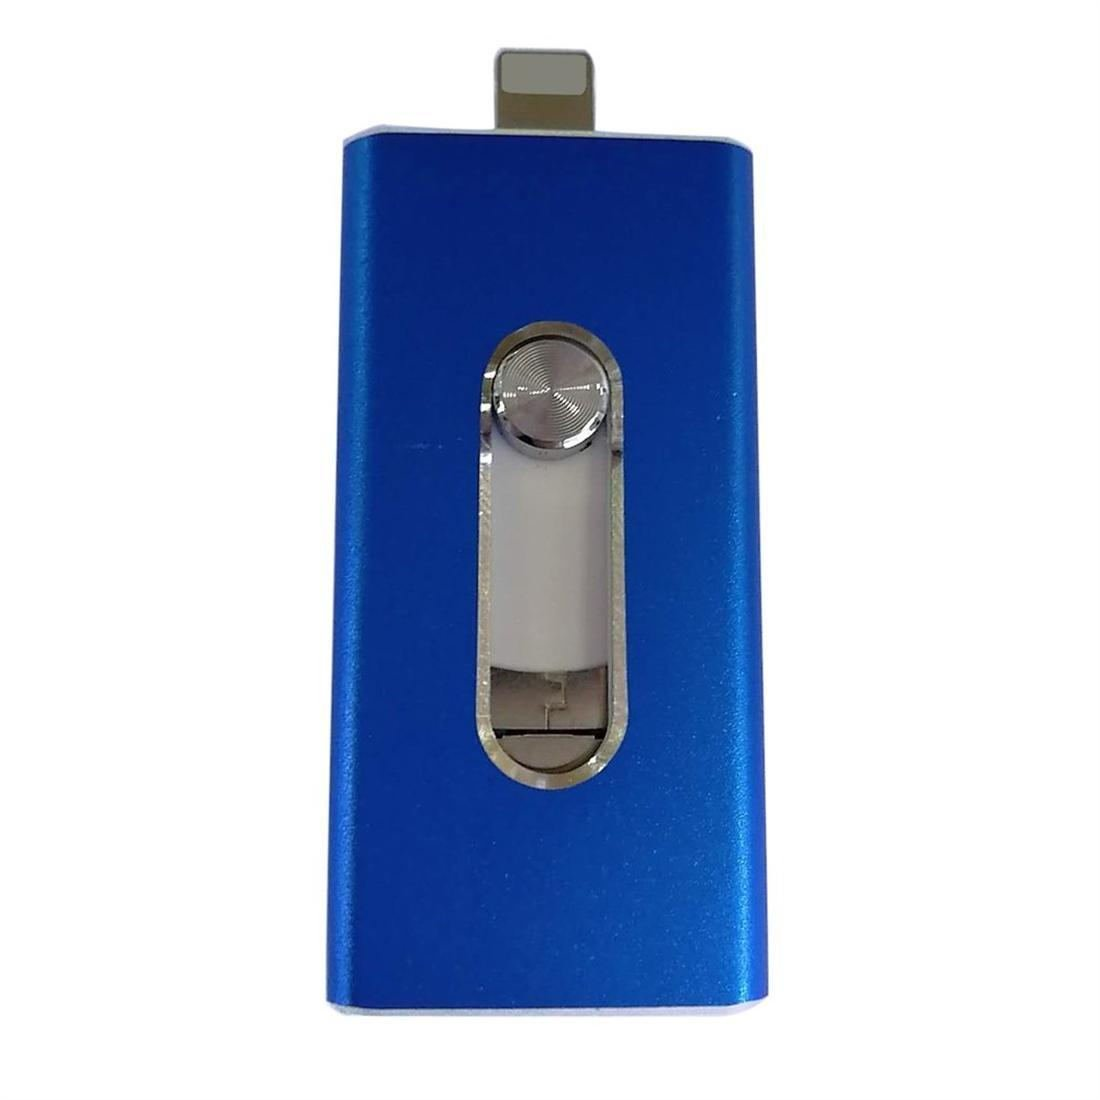 3 in 1 32G Flash OTG USB Stick for Apple for Android Computer Phone